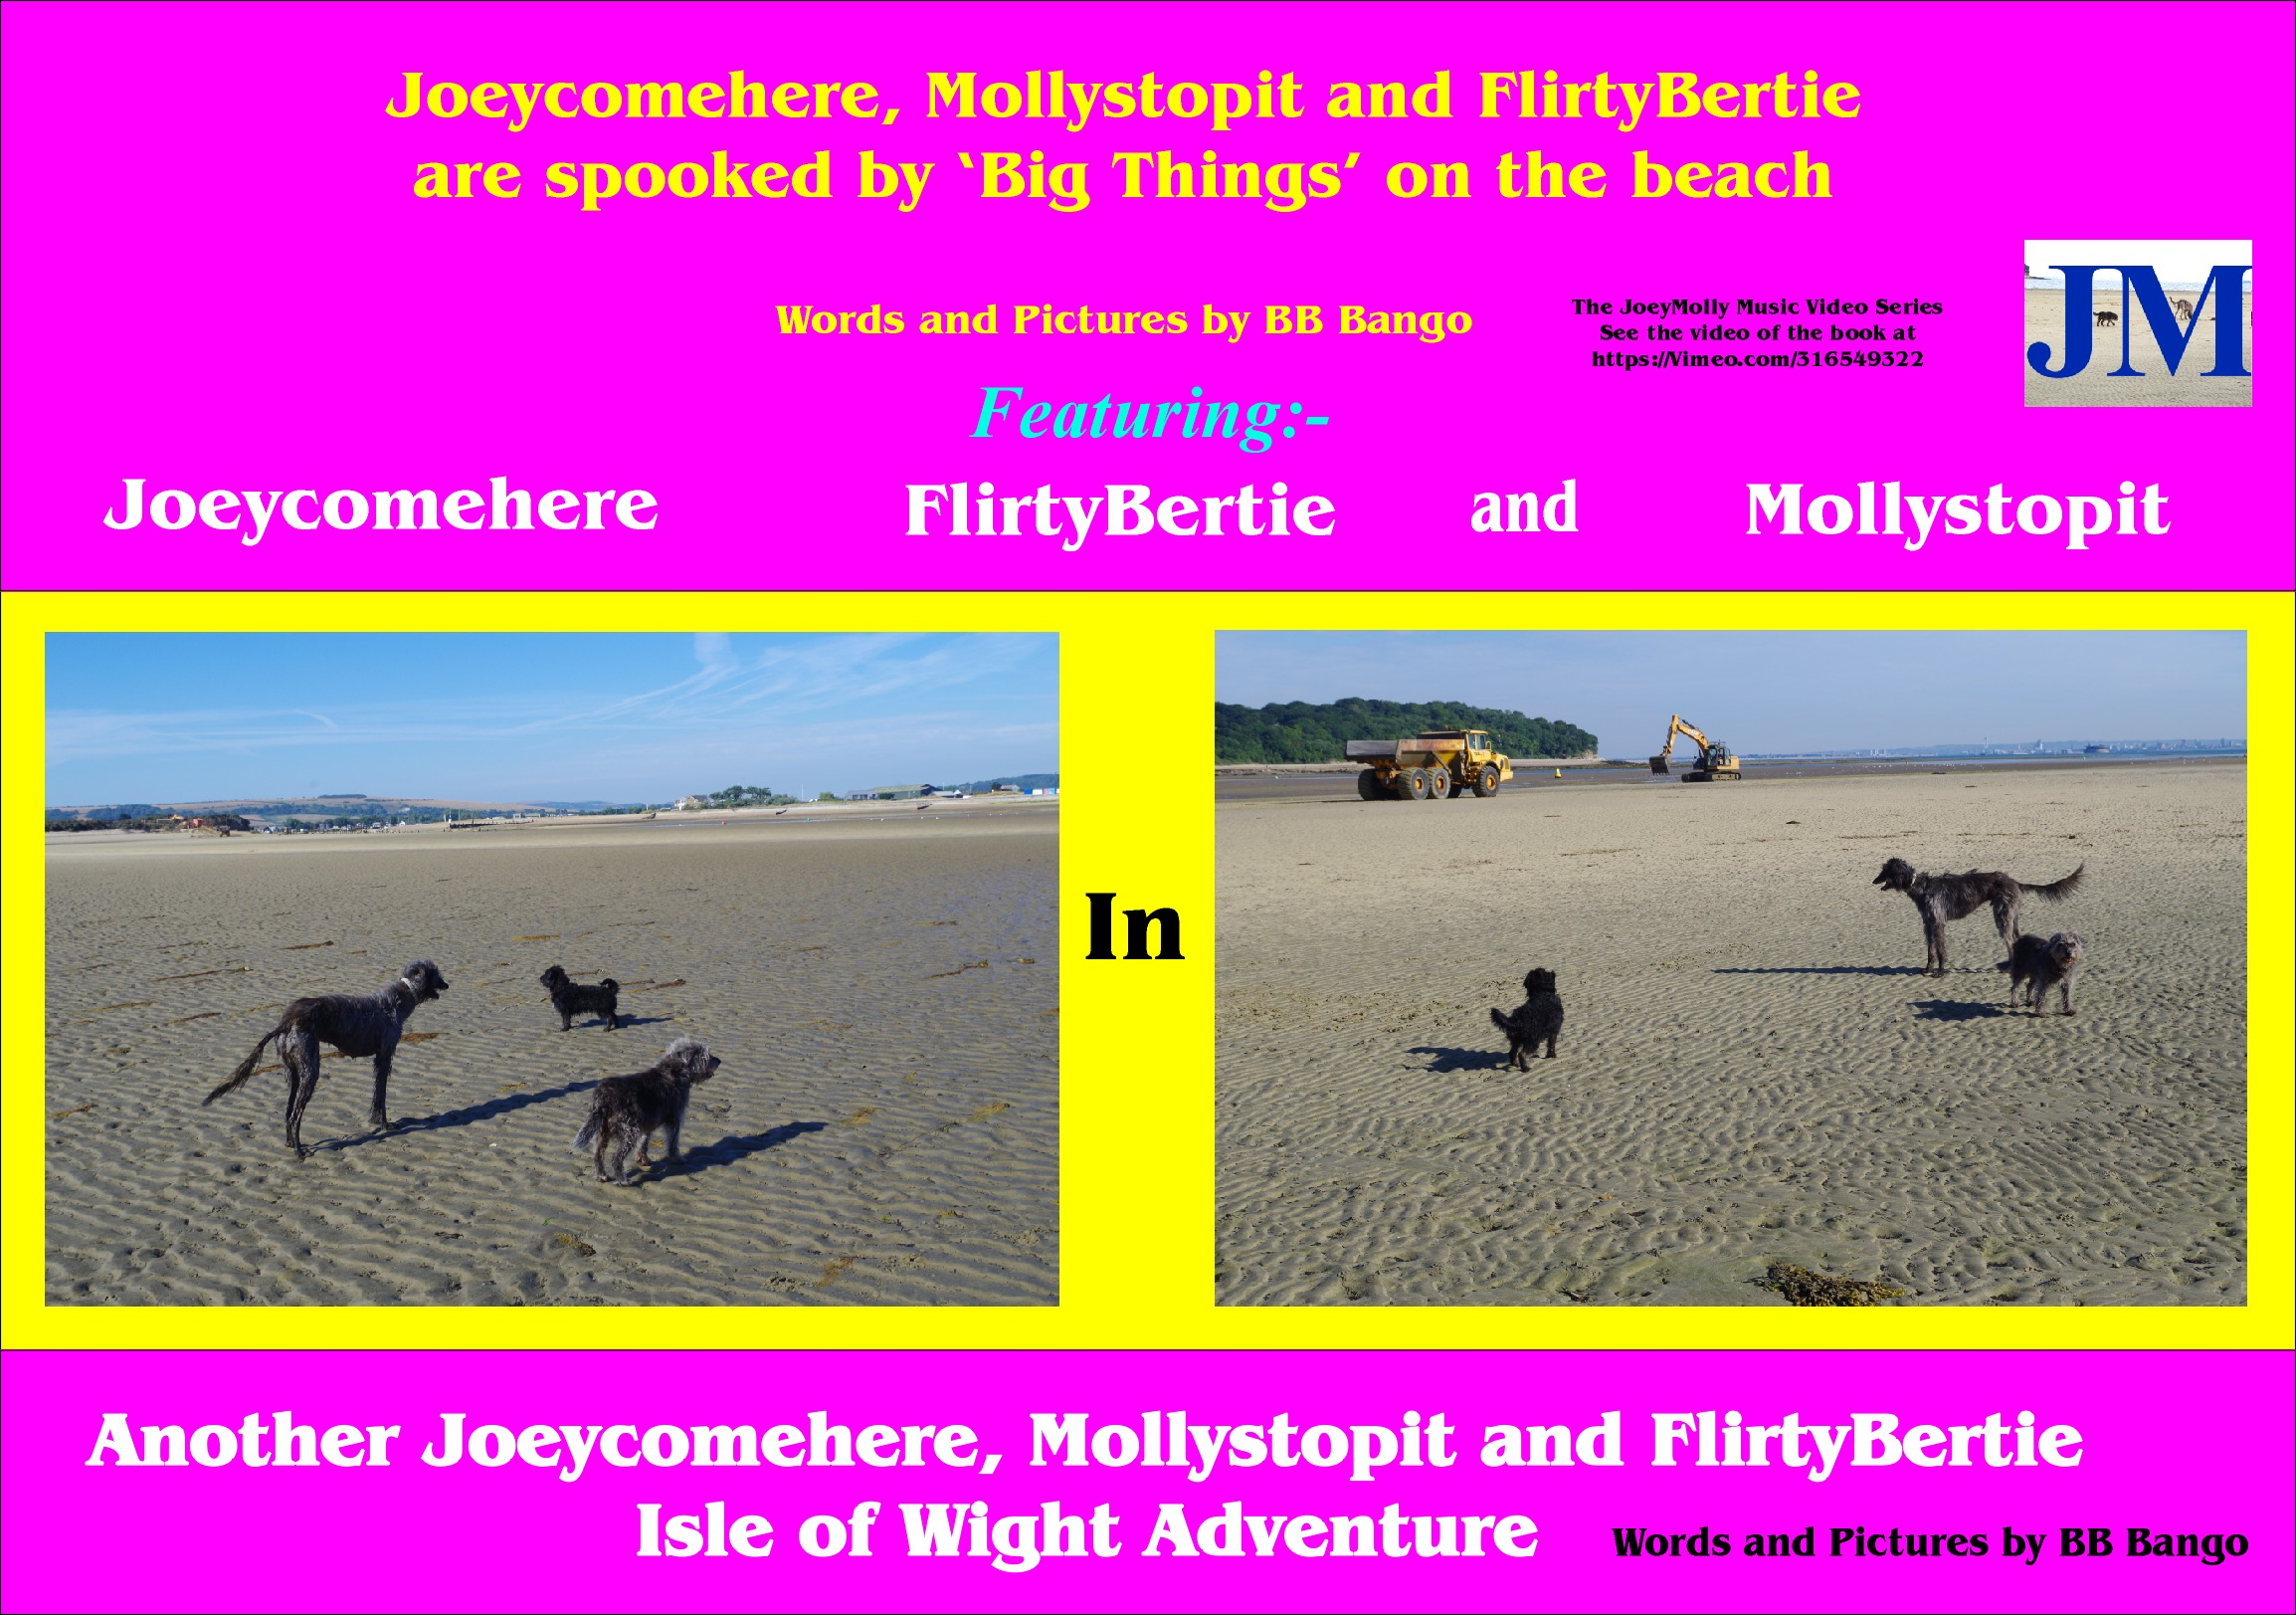 Now available on Kindle. Joeycomehere, Mollystopit and now FlirtyBertie get spookend by big things on the beach. Part of a series of Wight Adventures written by BB Bango and published by ClayClay. Copies of book in  A5 format available direct from the ClayClay Shop  This 4th book  is also a music video on vimeo.com. see link on front cover of book